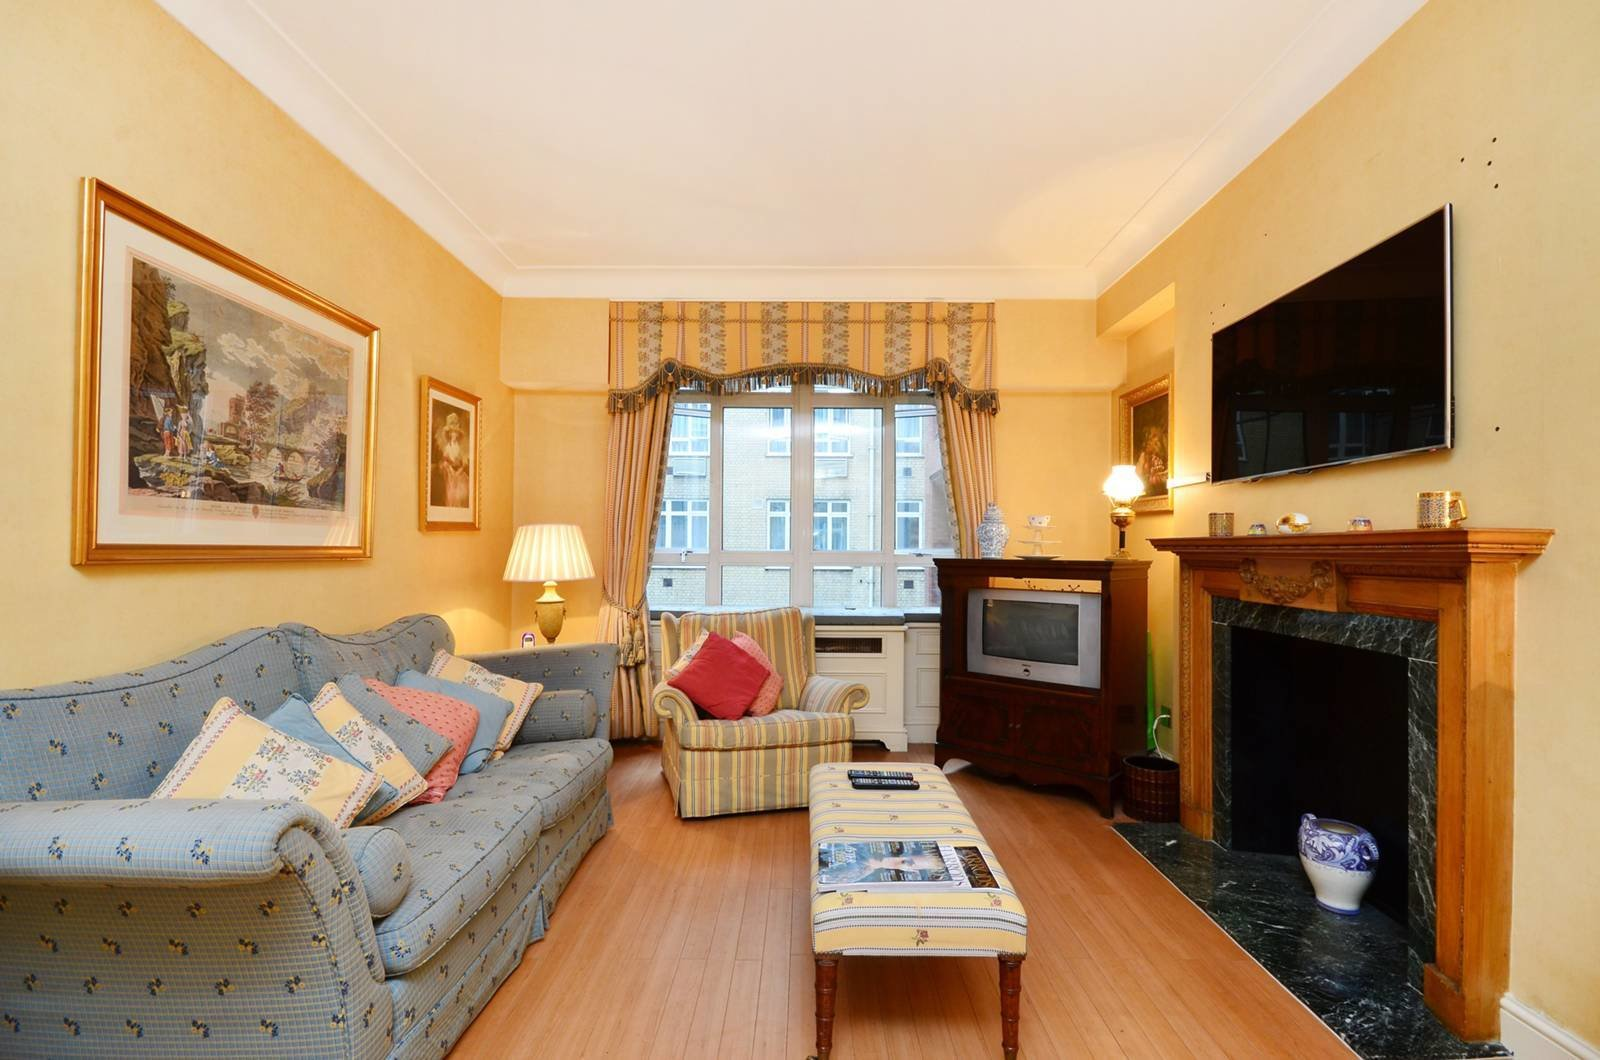 Best 1 Bedroom Flat For Sale In Park Lane Mayfair W1K London With Pictures Original 1024 x 768